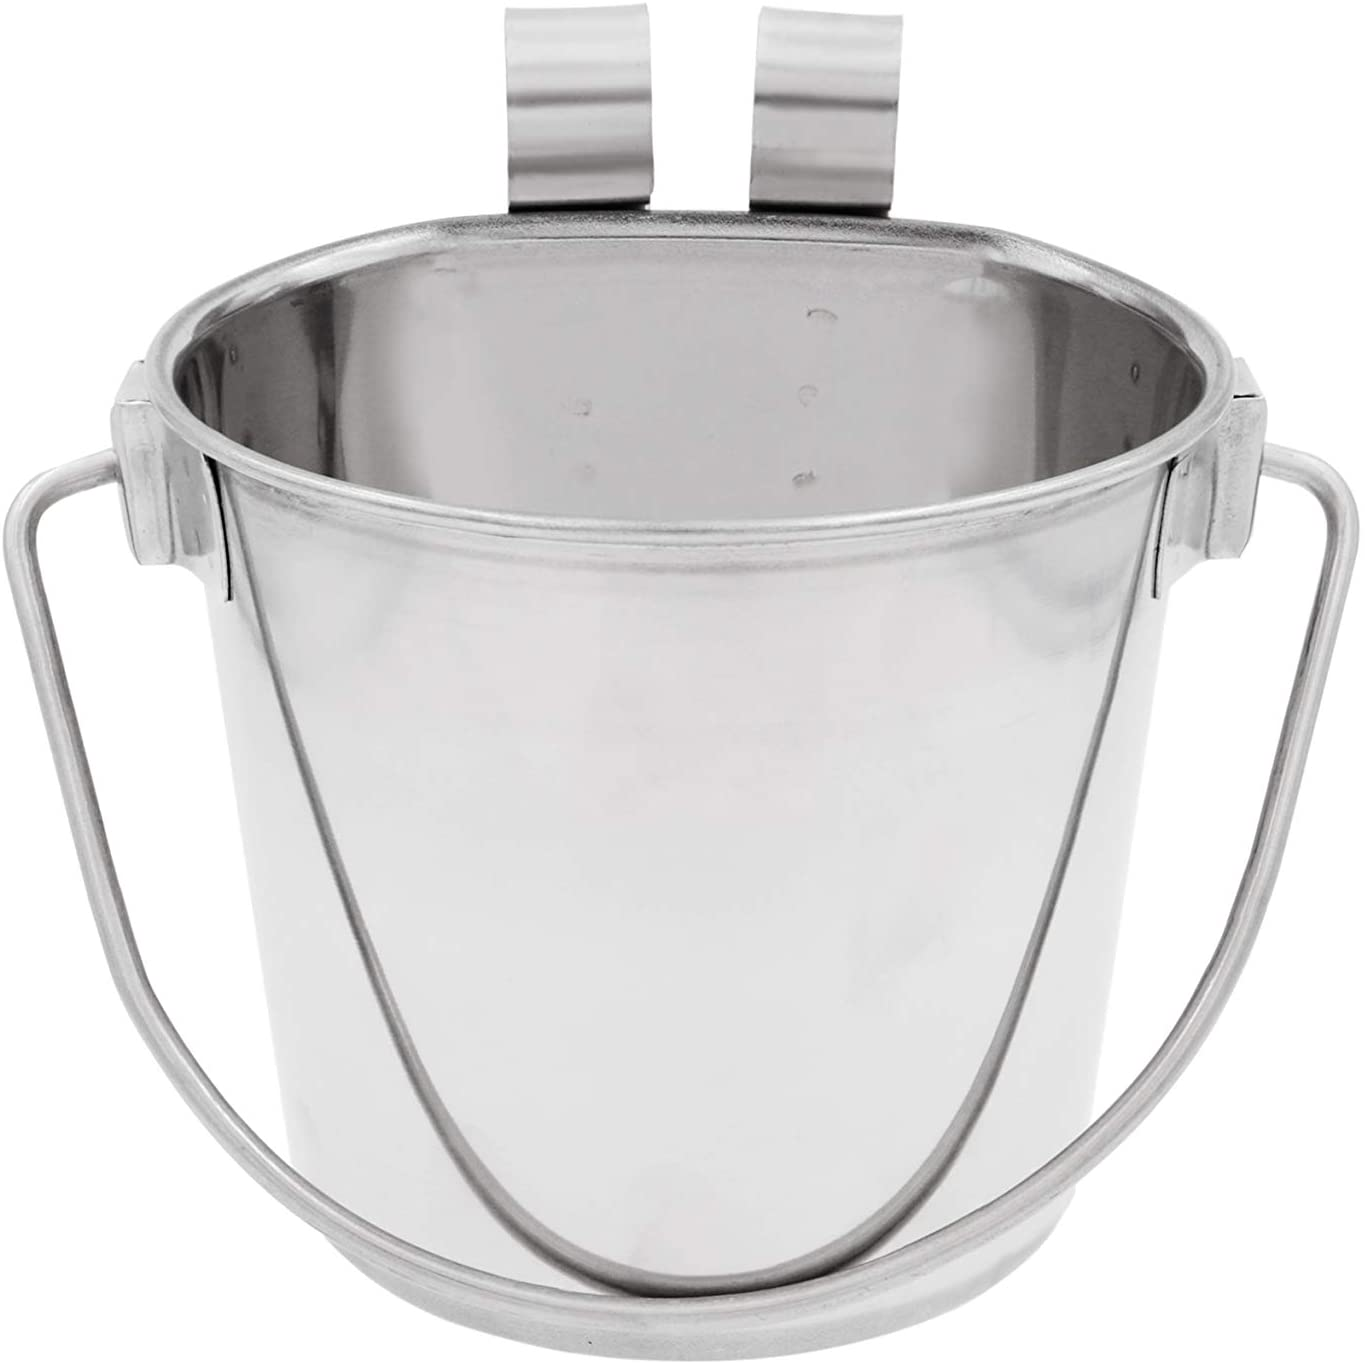 Fuzzy Puppy Flat Sided Pail with Dual Hooks, Snugly Fit On Dog, Cat and Critter Crates & Cages, Heavy Duty Stainless Steel, 2 Quart (FSP-2)